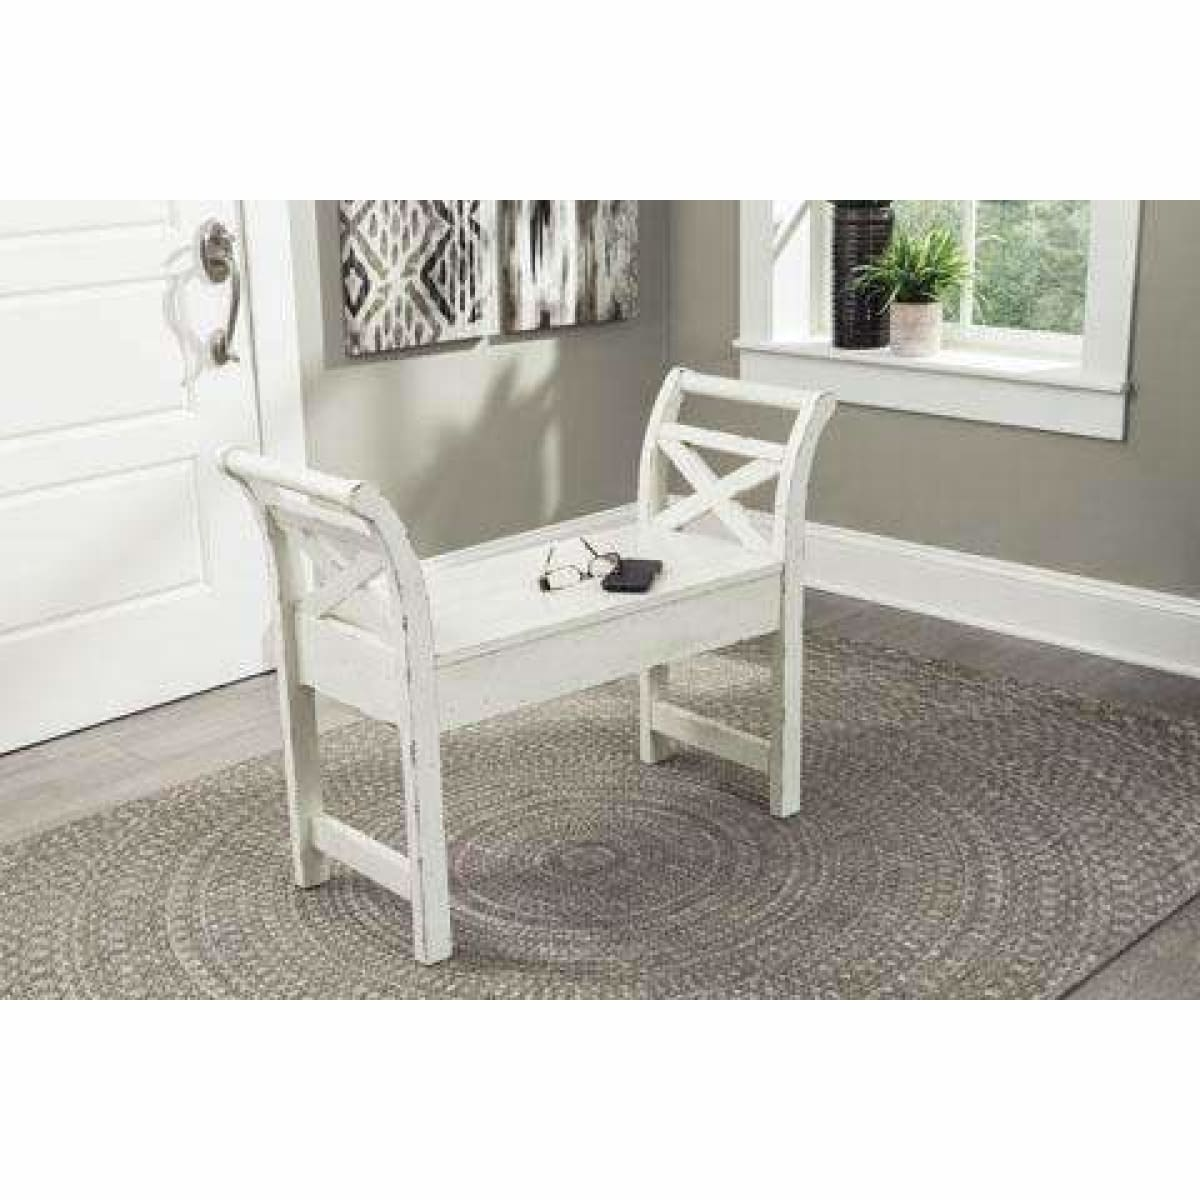 Heron Ridge Antique White Accent Bench - Long Bench